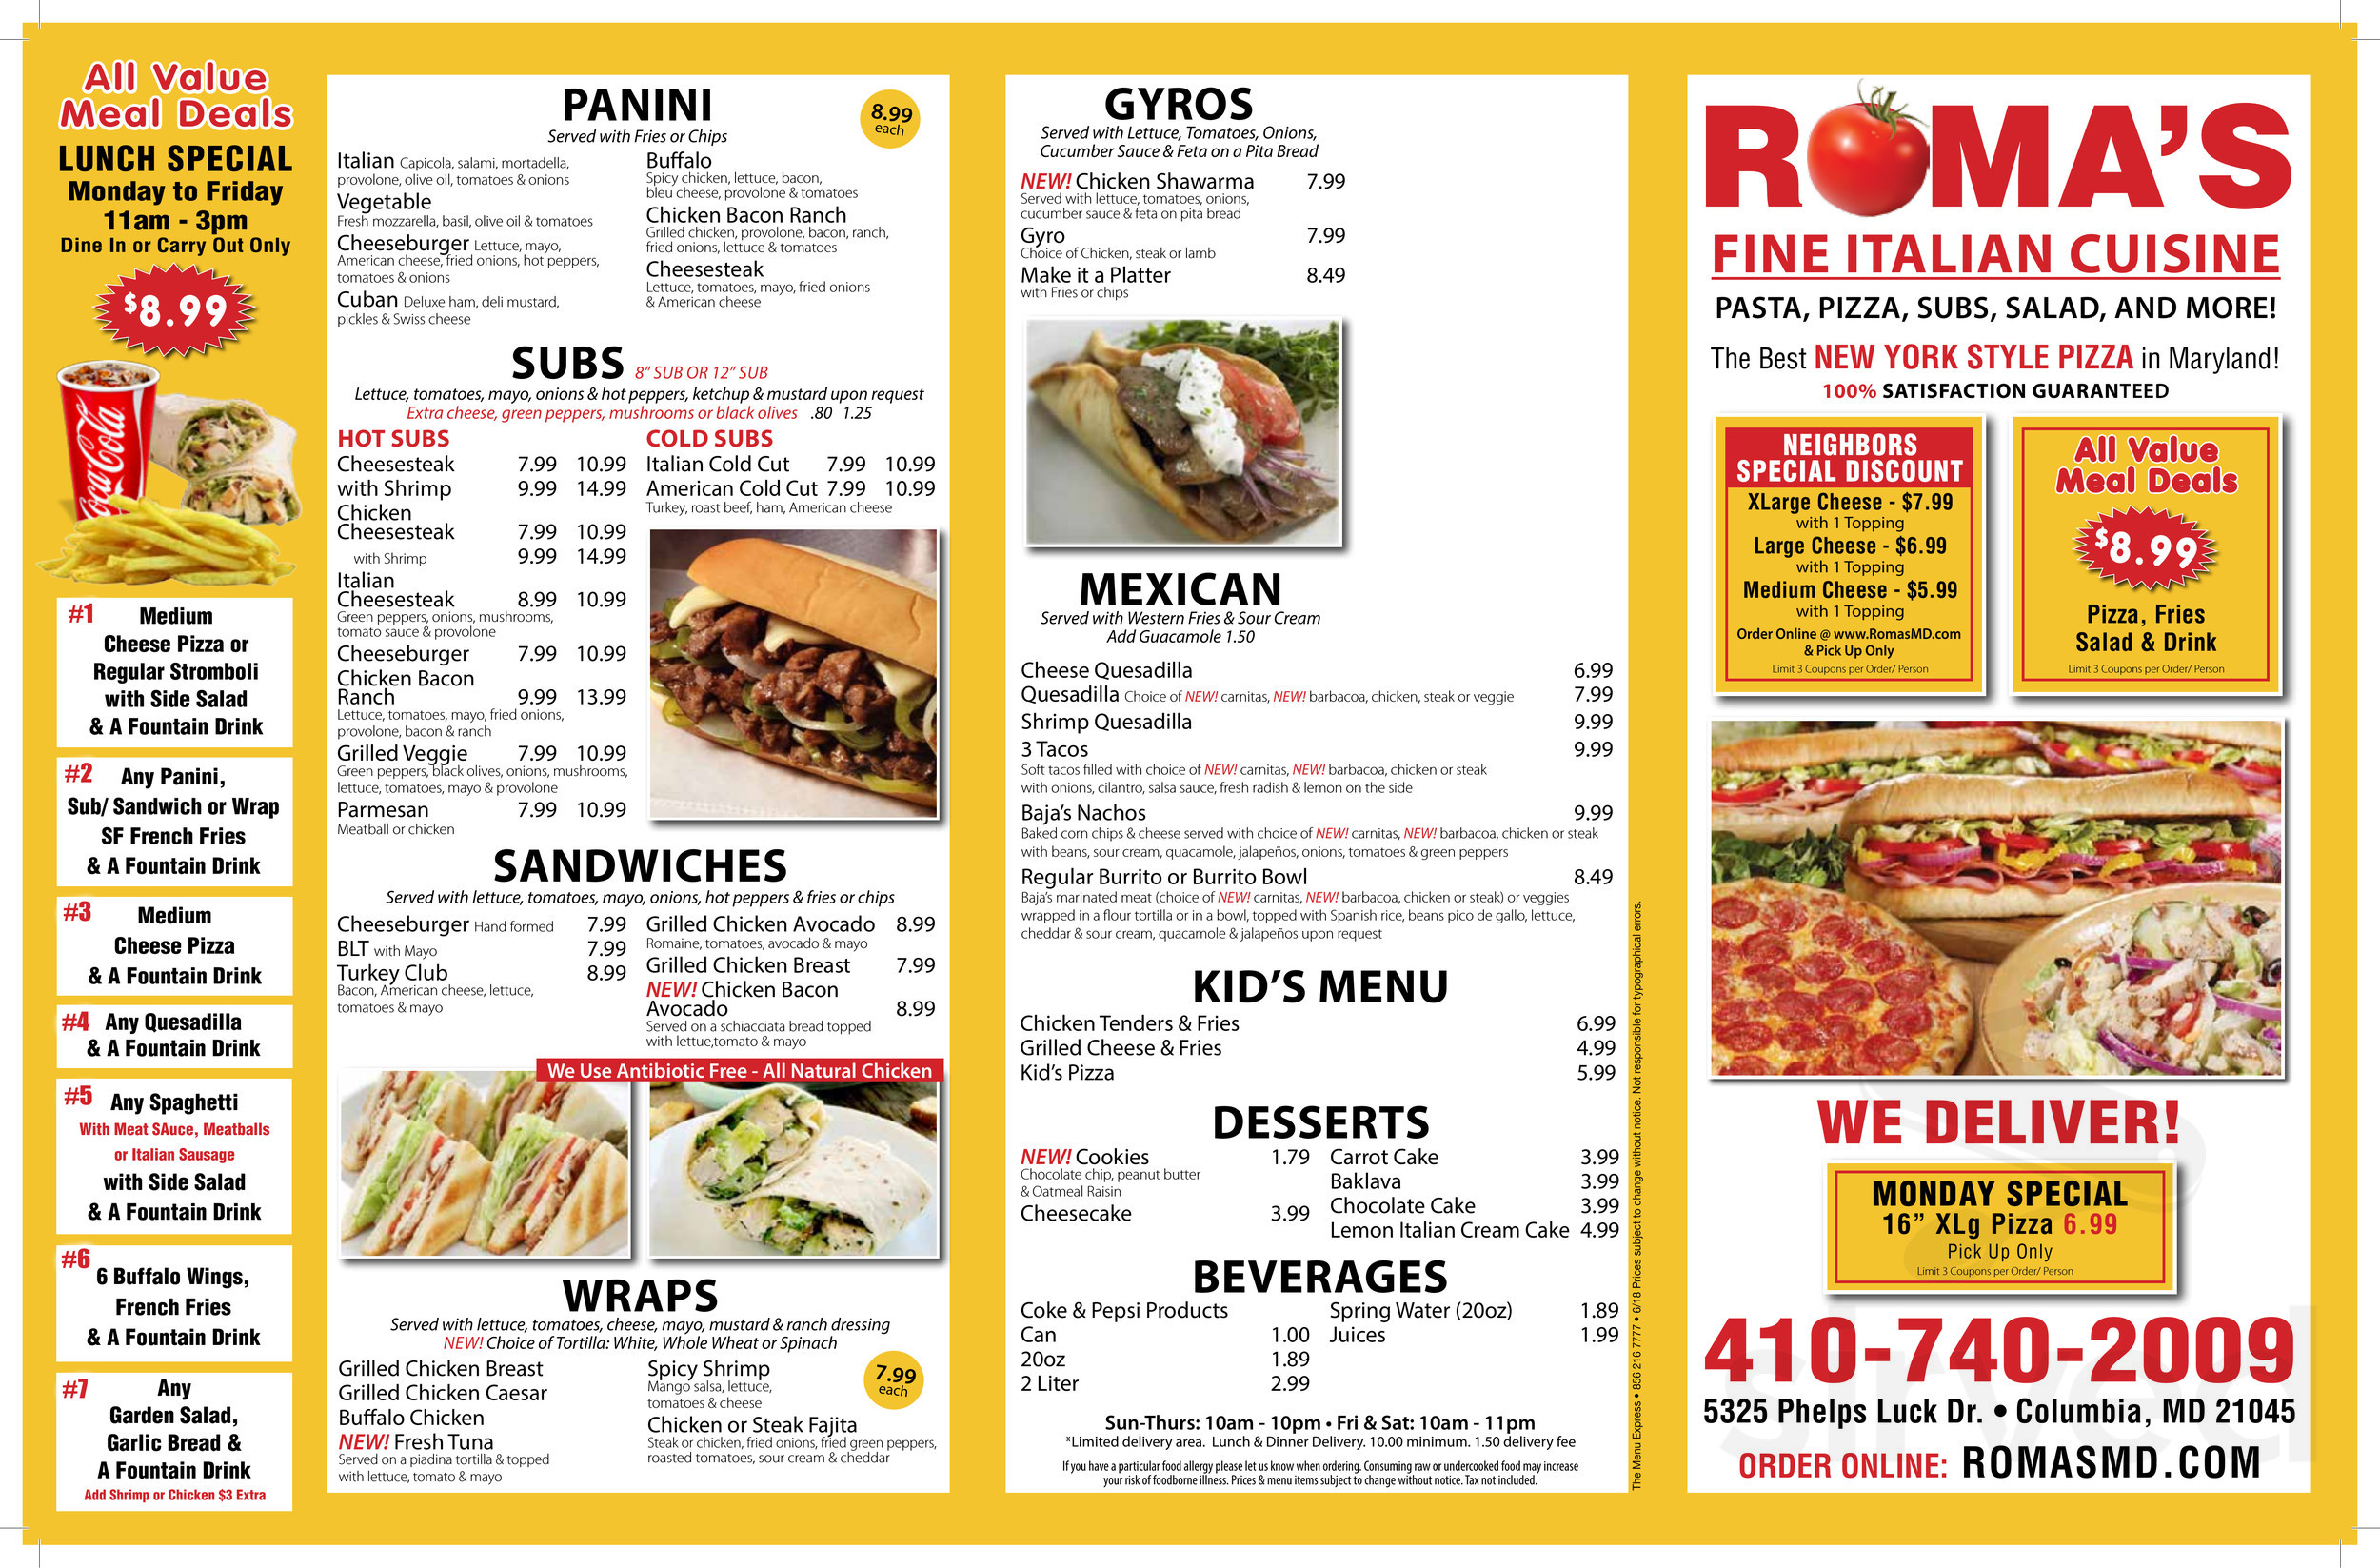 Roma's Pizza, Subs & Pasta menu in Columbia, Maryland